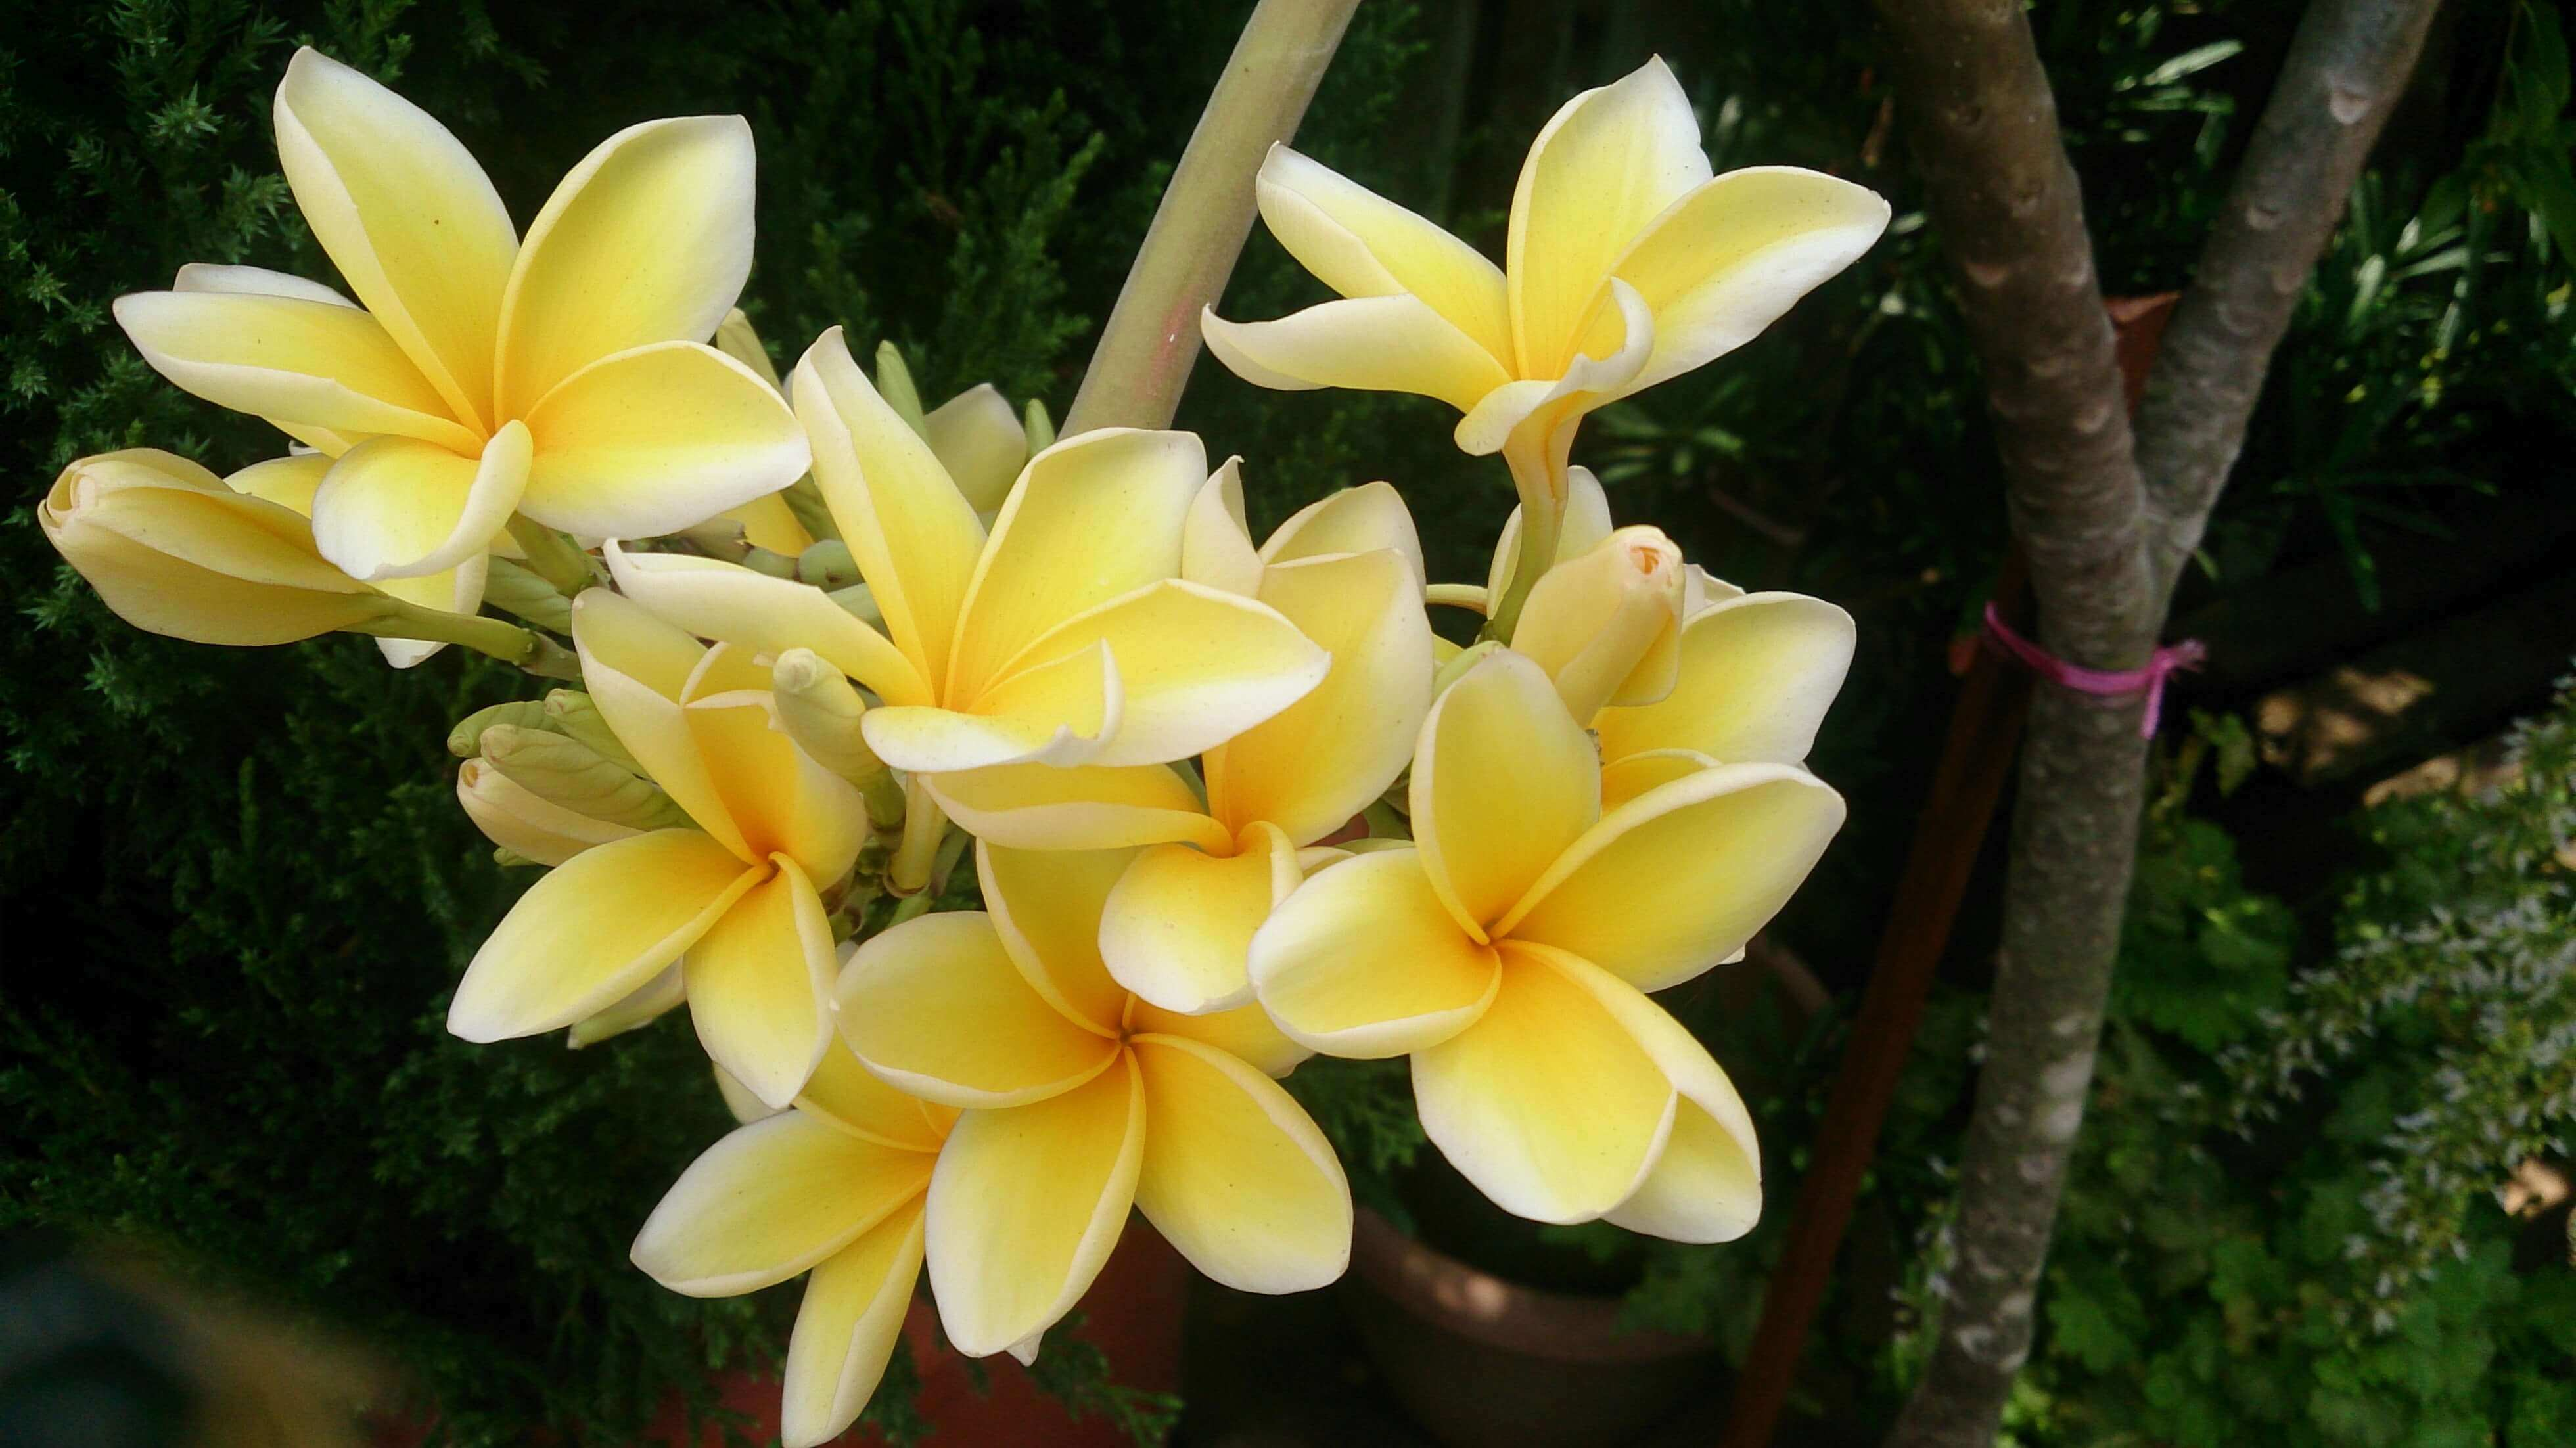 Best quality natural essential oils including Frangipani Oil - Plumeria Alba Essential Oil, Reconstitution of Frangipani and other fragrance & perfume oils at the most discount rates by BMV Fragrances from UP, India.